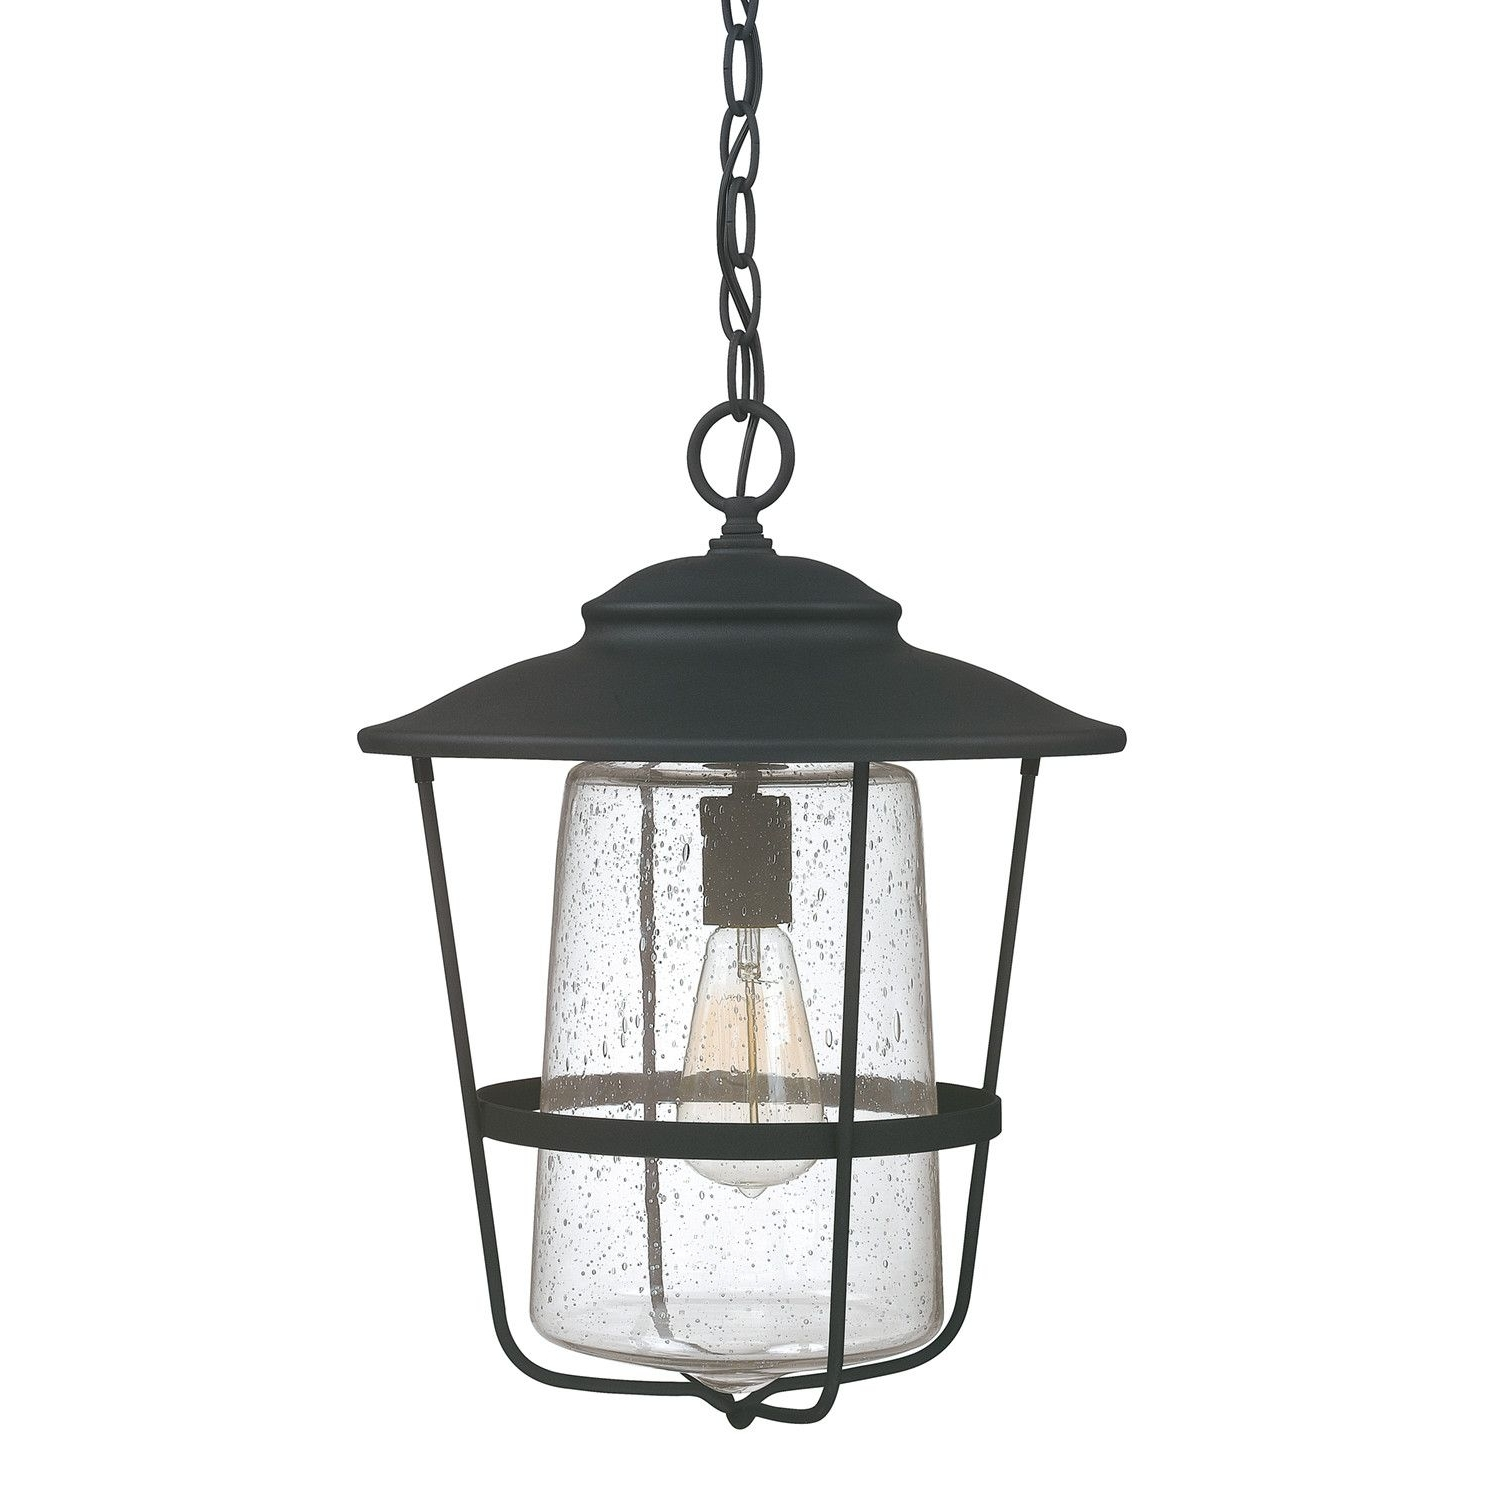 Furniture : Creekside Light Outdoor Hanging Lantern Products Solar Regarding Preferred Hanging Outdoor Onion Lights (View 10 of 20)